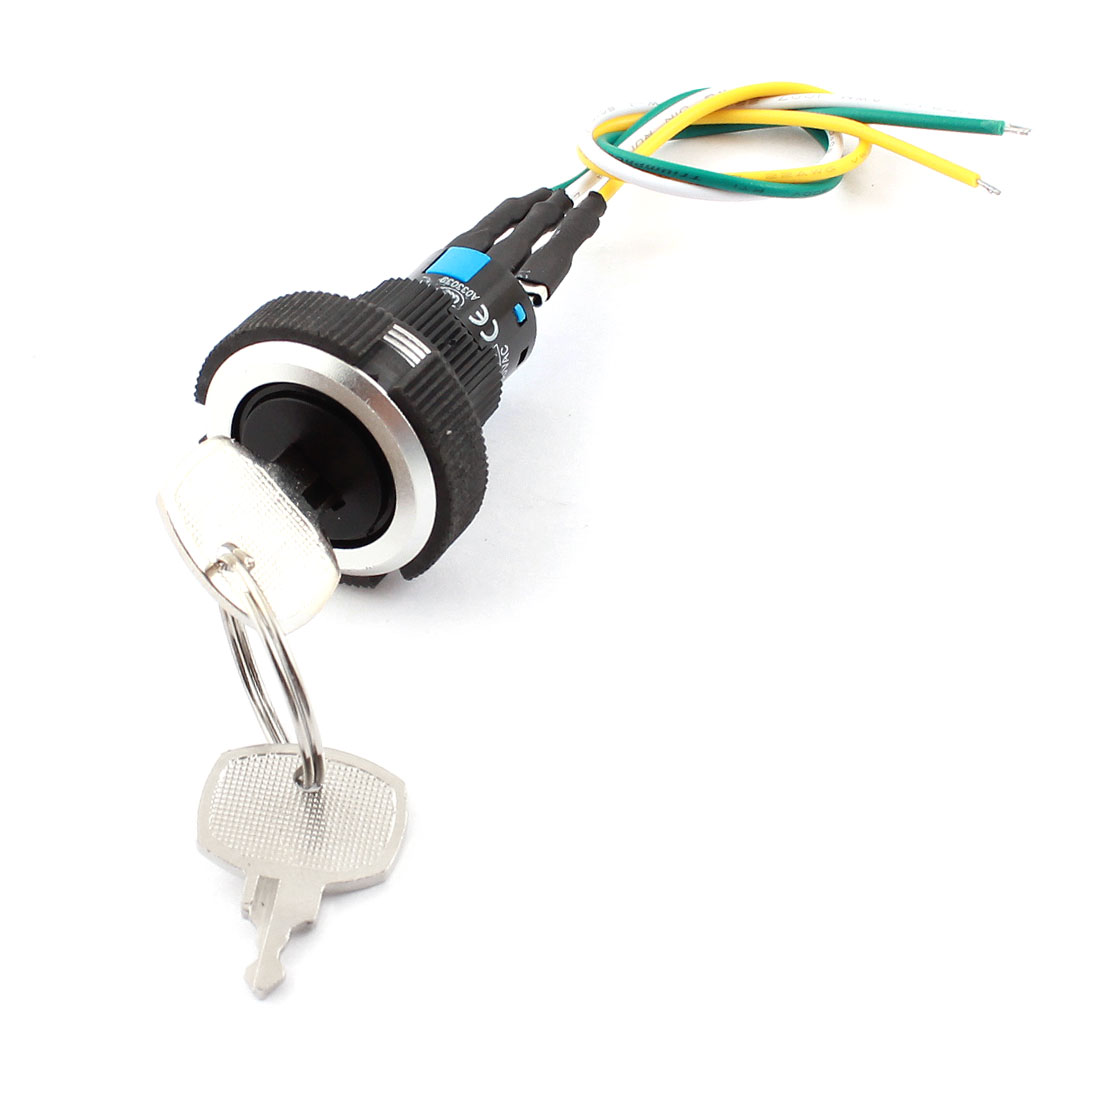 AC 220V/250V 5A 22mm Dia Thread Panel Mount SPDT 1NO 1NC 2-Position Pluggable Wire Terminal Key Rotary Selector Switch